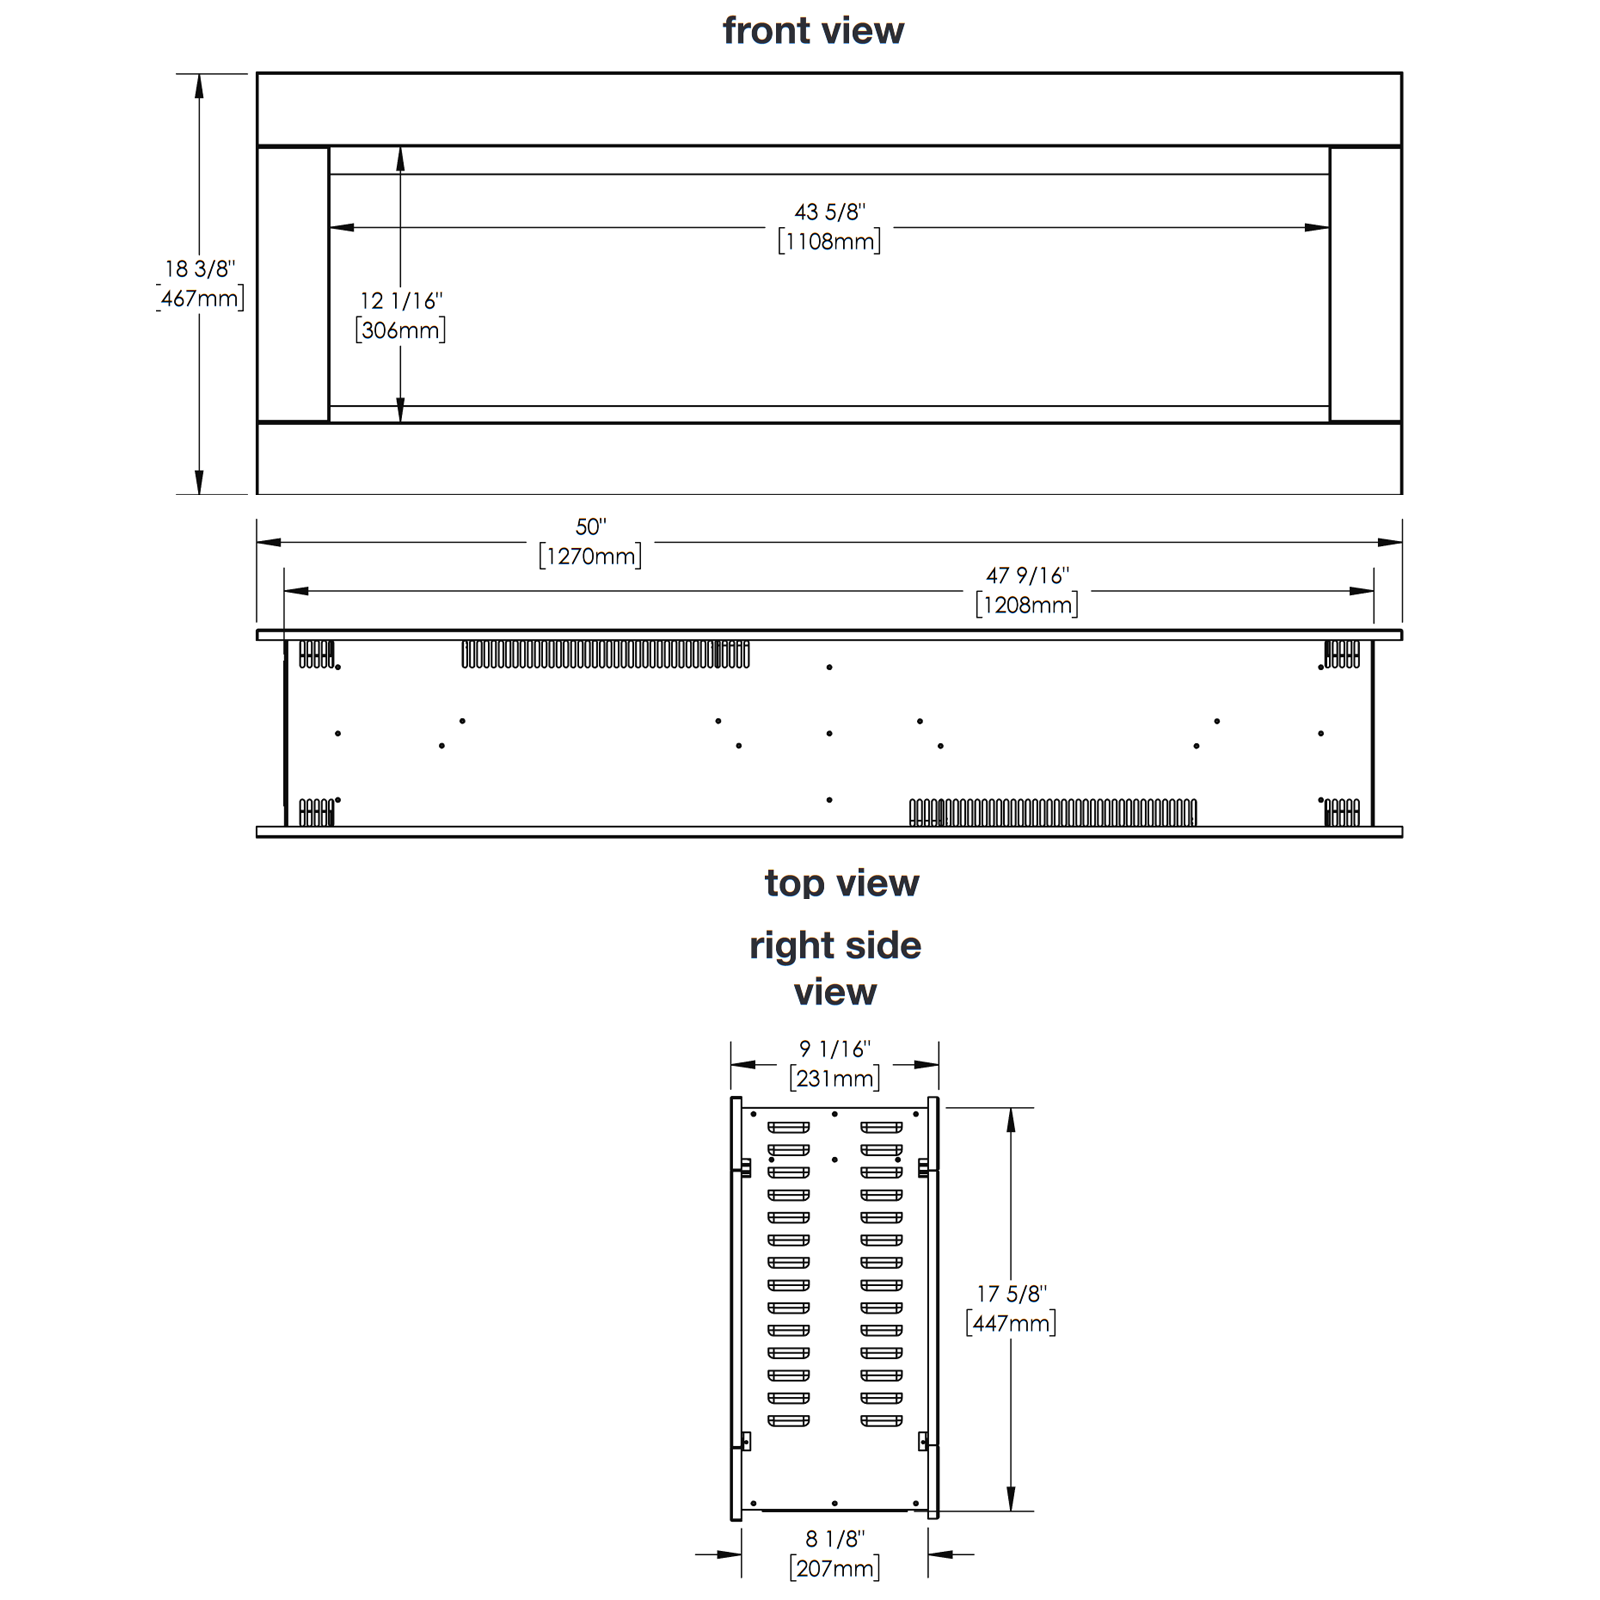 NEFBD50 Technical Drawing 1